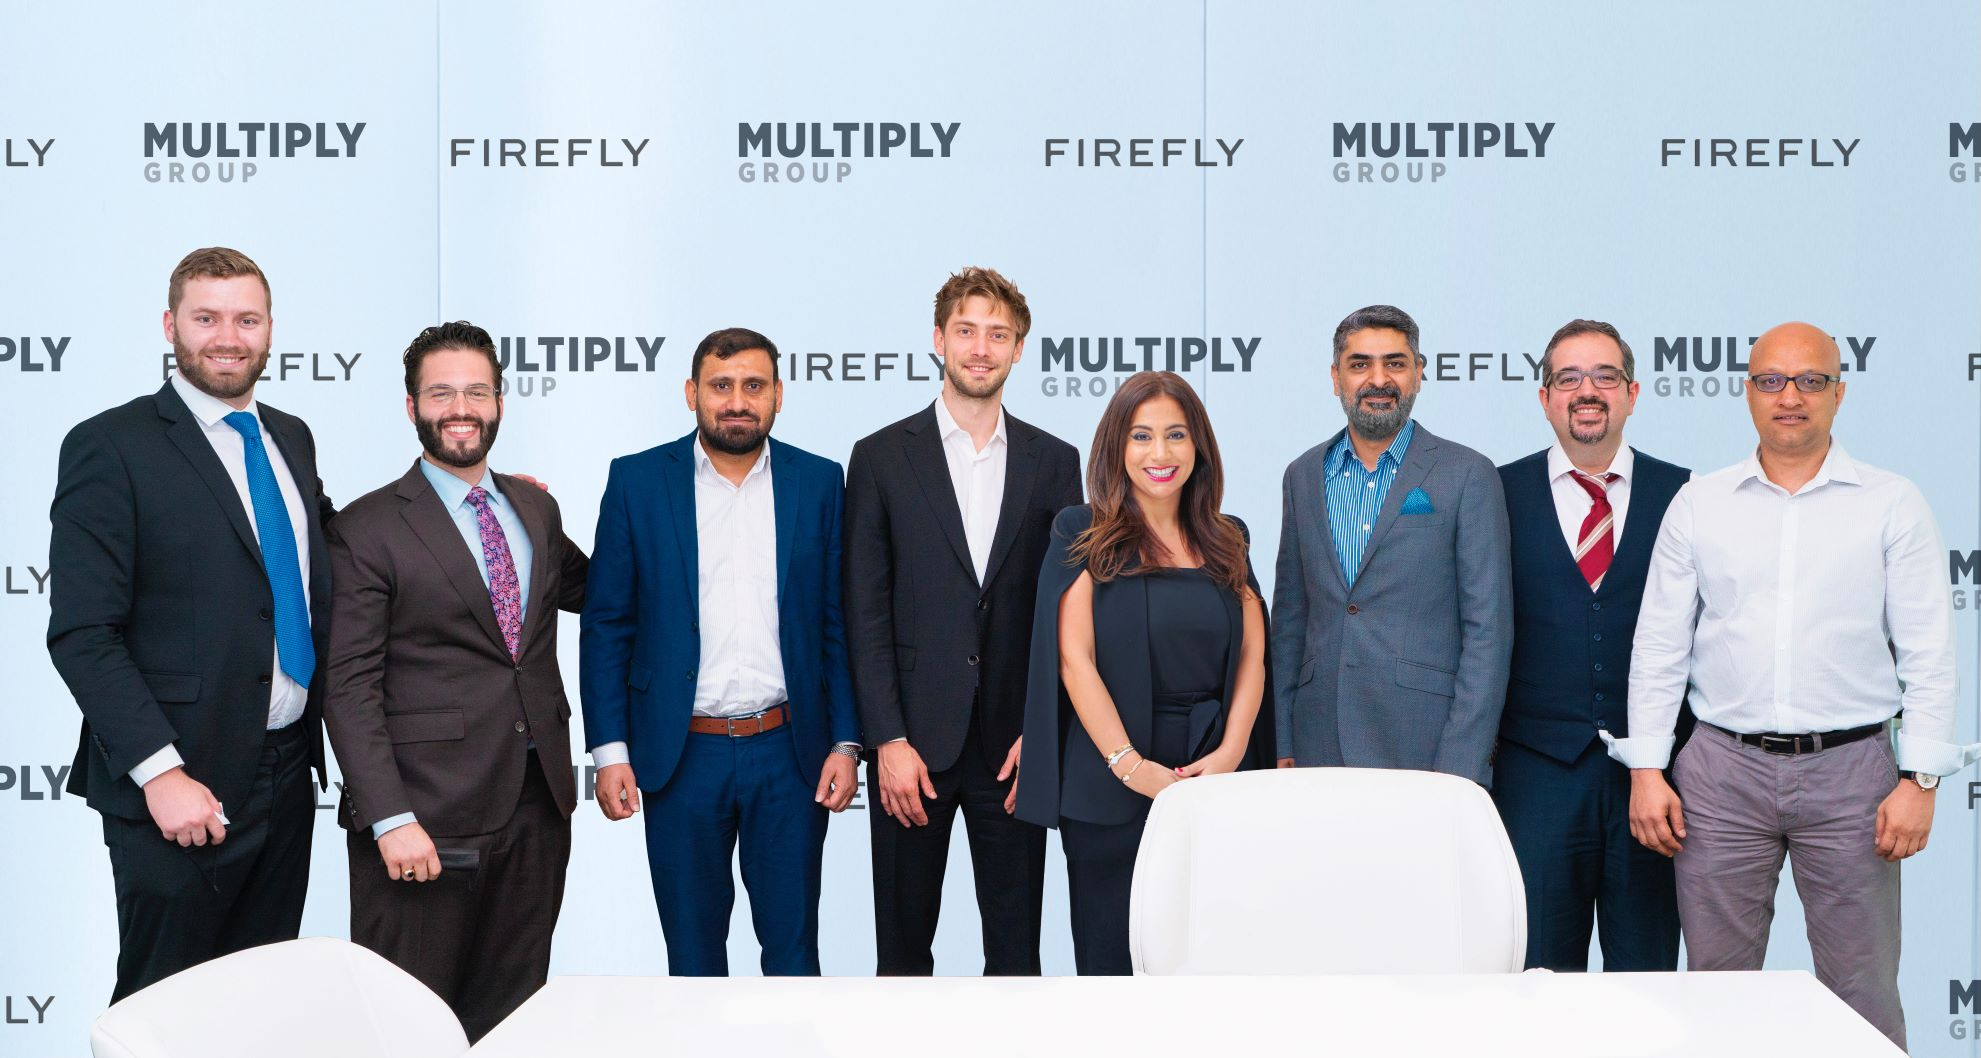 abu-dhabis-multiply-group-invests-further-aed55million-in-firefly-to-bring-digital-advertising-services-to-taxis-and-rideshares-in-mena